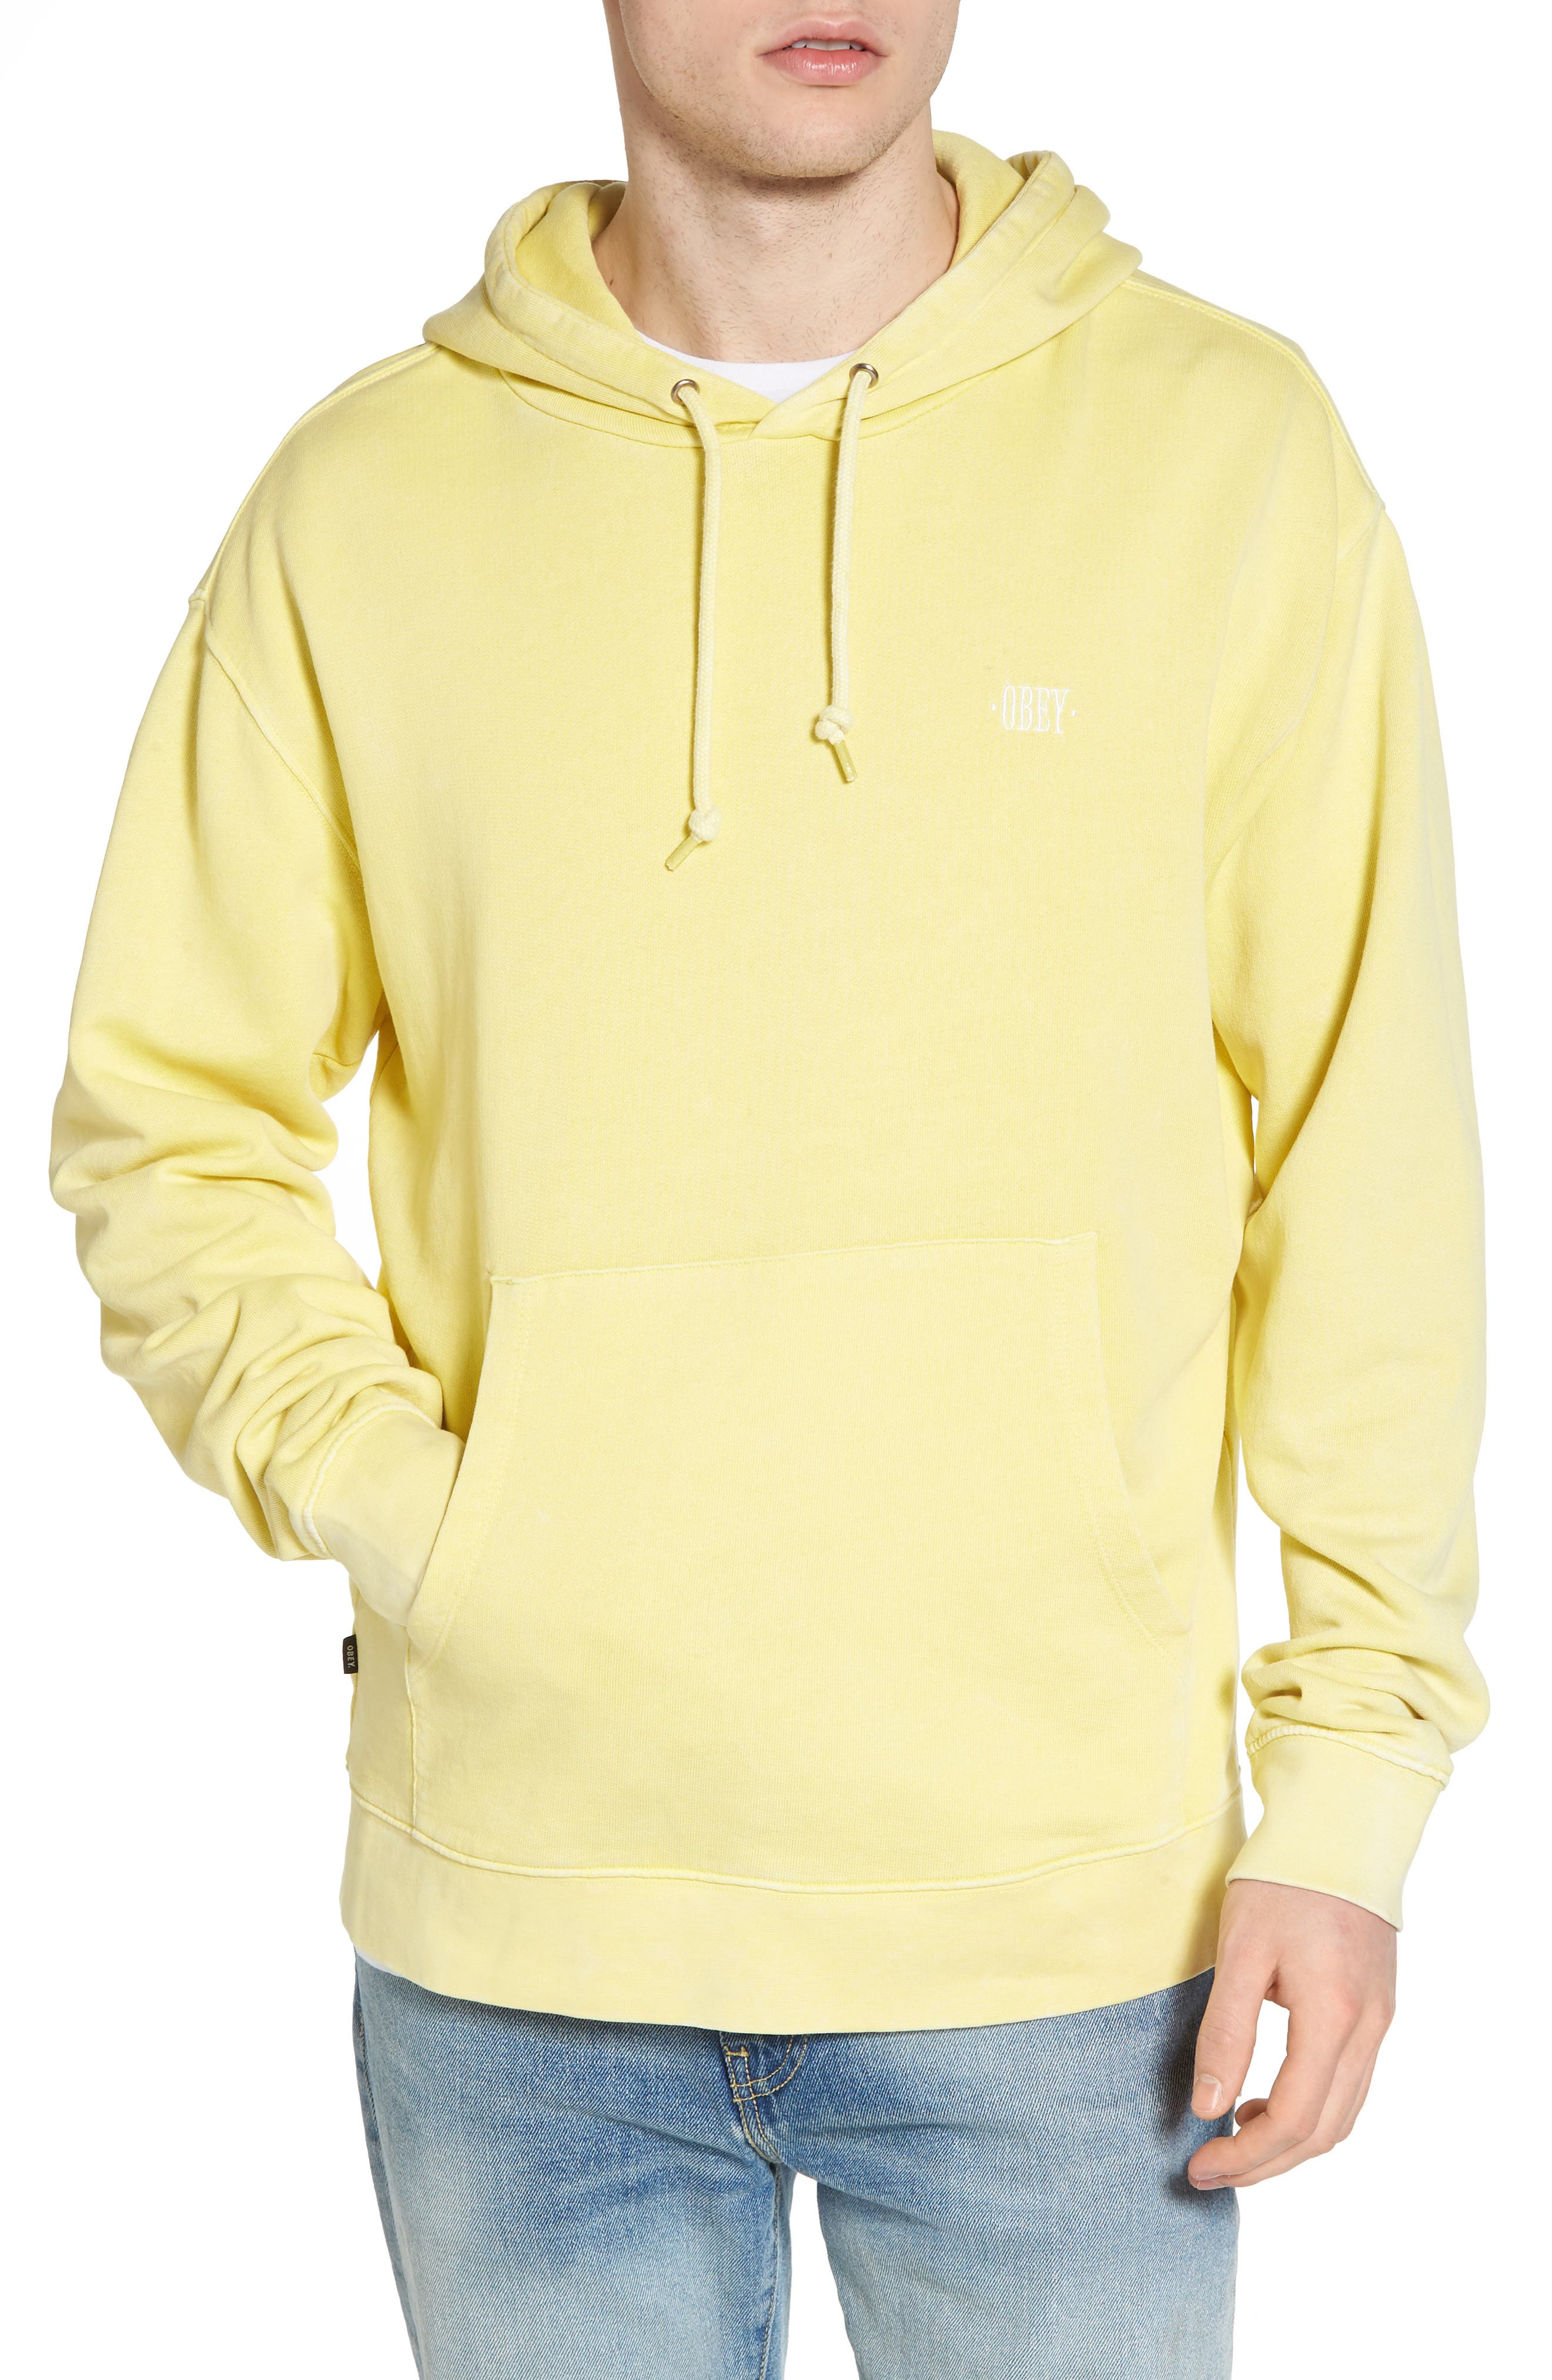 Faded Pigment Dyed Hoodie Sweatshirt,                             Main thumbnail 1, color,                             Yellow